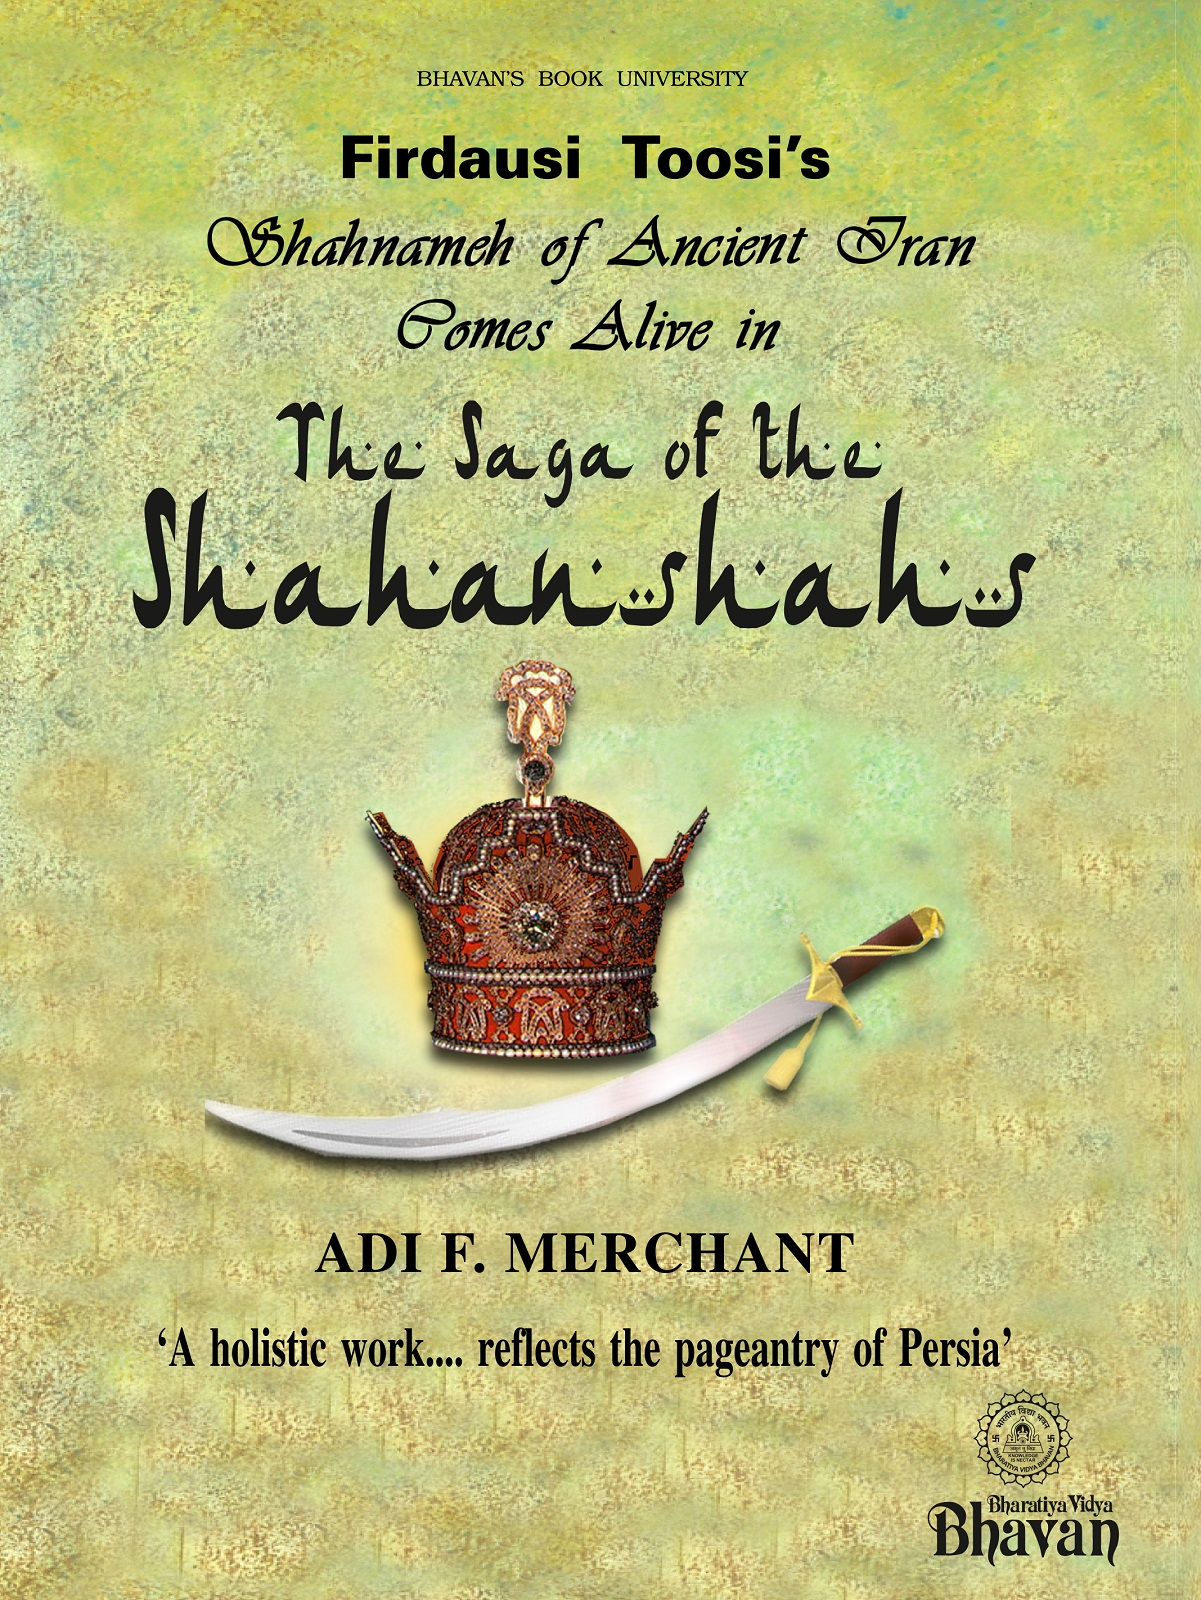 The Saga of the Sahanshahs